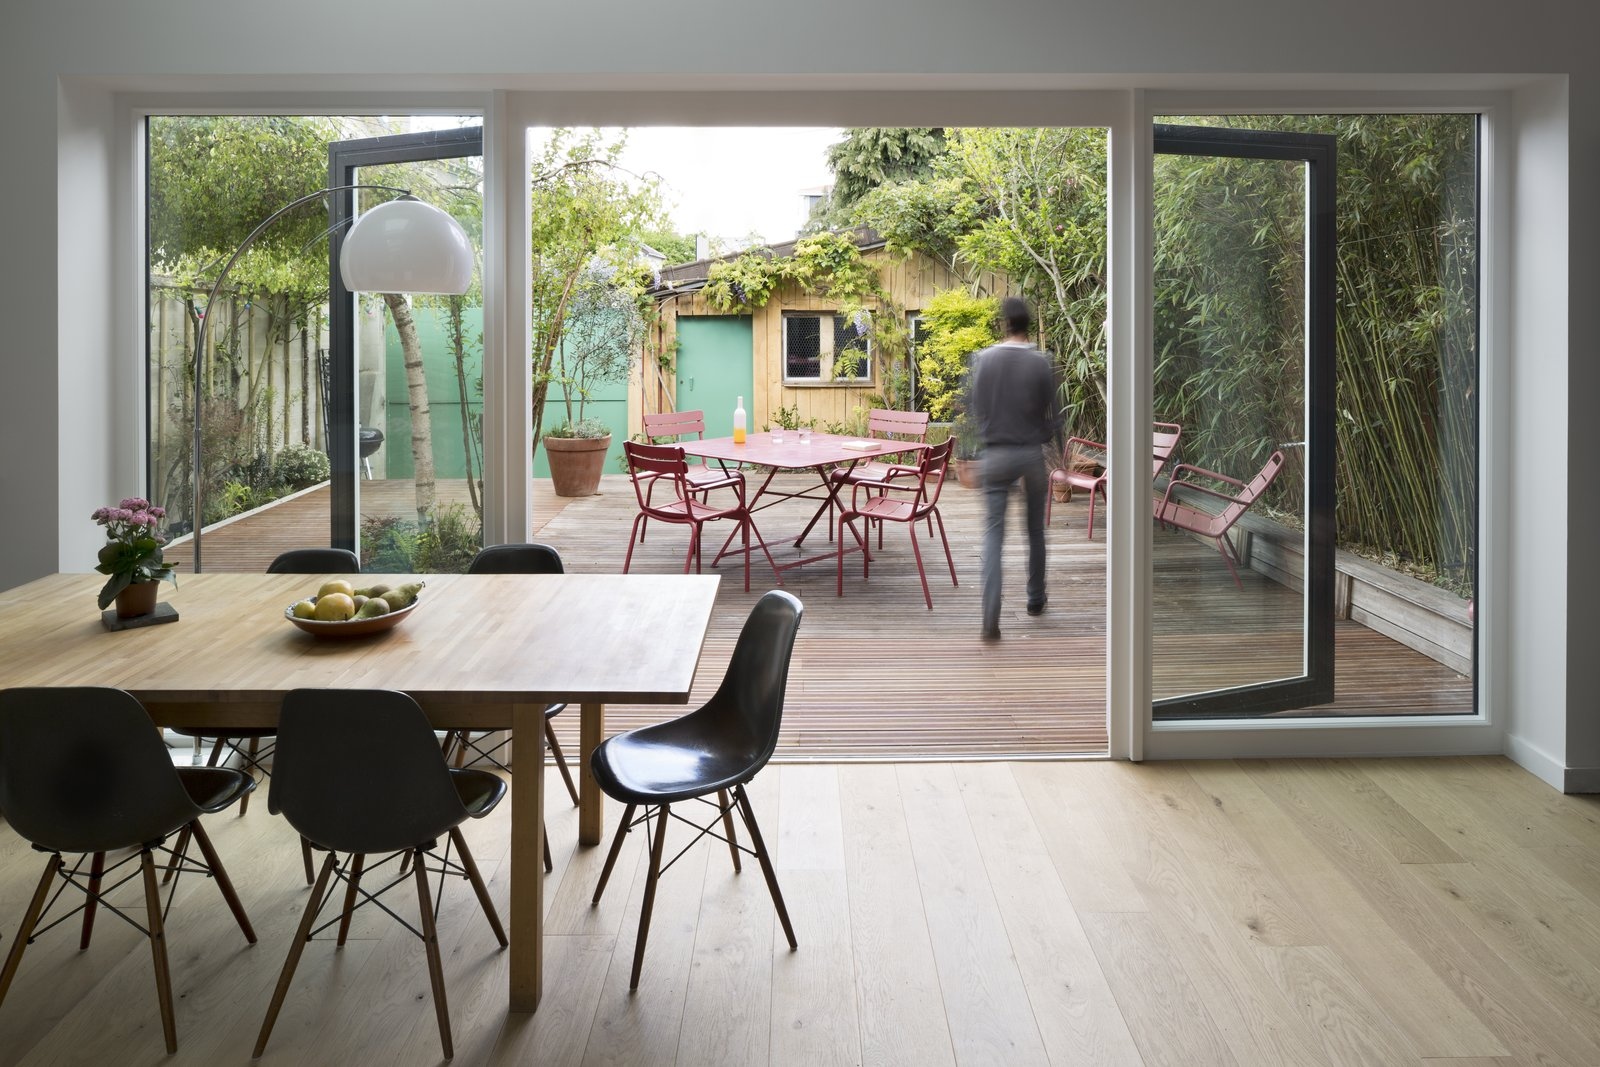 Dining Room, Table, Floor Lighting, Light Hardwood Floor, and Chair When the family wants to eat meals inside, they can sit around the dining table on Eames chairs.  Wisteria Residence by Kelly Dawson